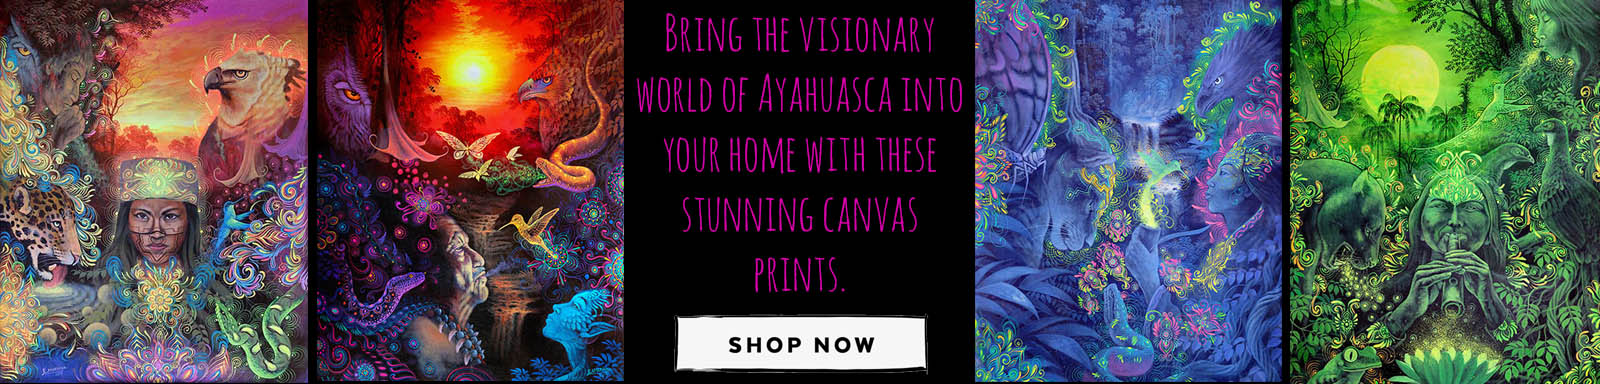 Gaia Tree Aya Art Banner - Ayahuasca Retreat Center - Authentic Ayahuasca Retreats near Iquitos, Peru